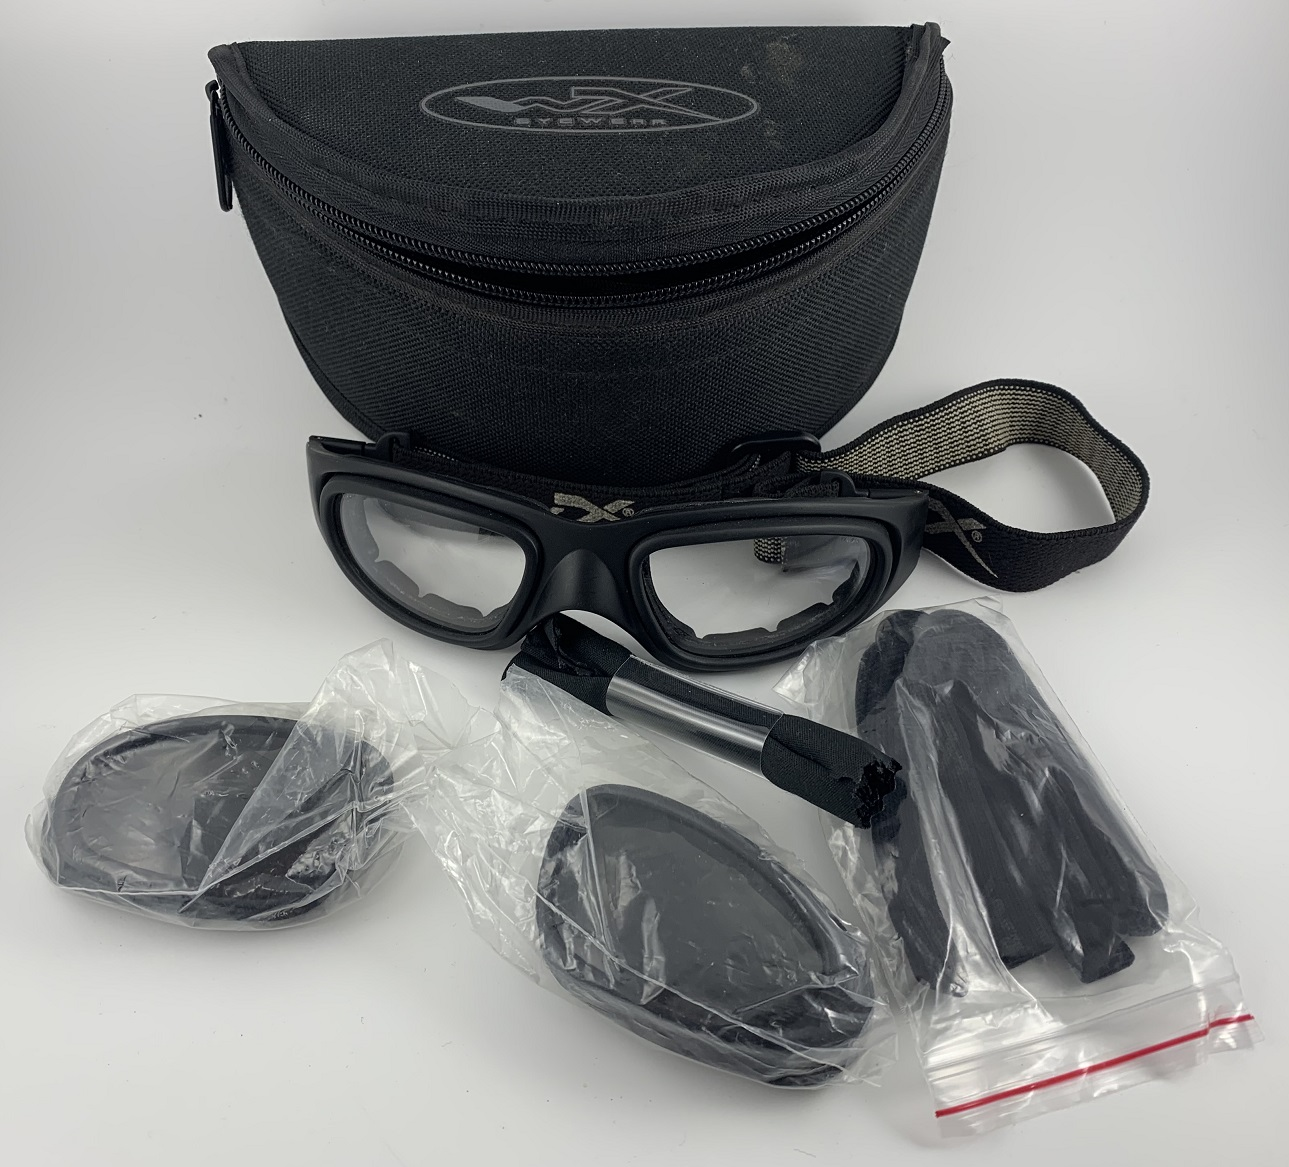 WileyX SG-1 Safety Goggles with lens, case extras